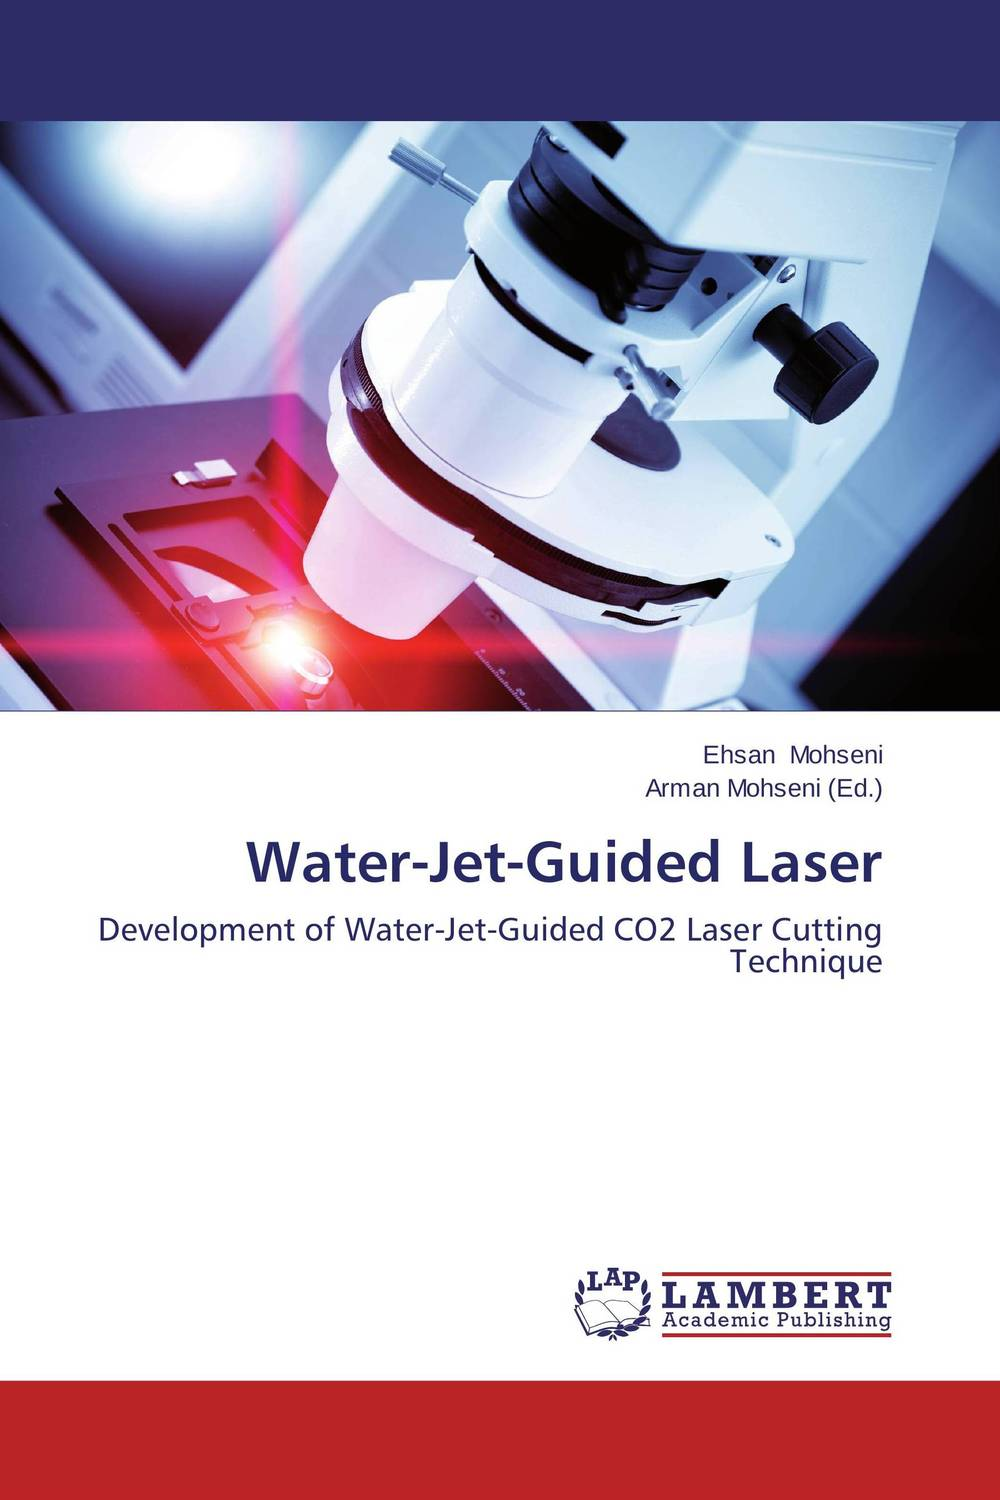 Water-Jet-Guided Laser usa znse co2 laser focus lens diameter 20mm focal length 50 8mm for co2 laser cutting and engraving machine